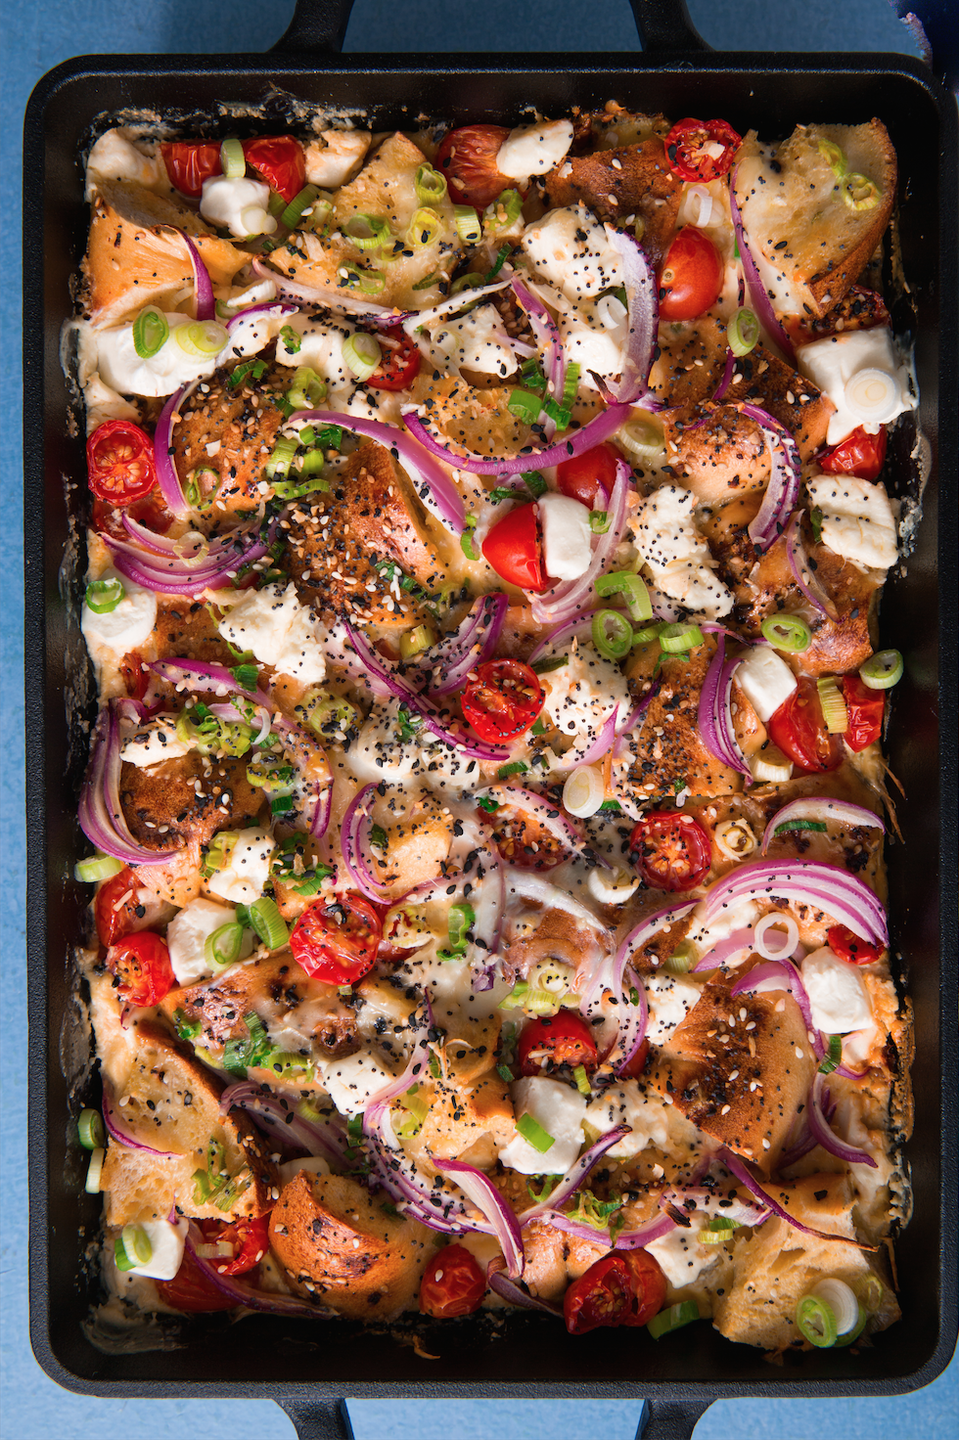 """<p>A fully loaded bagel casserole is what our dreams are made of.</p><p>Get the recipe from <a href=""""https://www.delish.com/cooking/recipe-ideas/recipes/a57263/everything-bagel-casserole-recipe/"""" rel=""""nofollow noopener"""" target=""""_blank"""" data-ylk=""""slk:Delish"""" class=""""link rapid-noclick-resp"""">Delish</a>.</p>"""